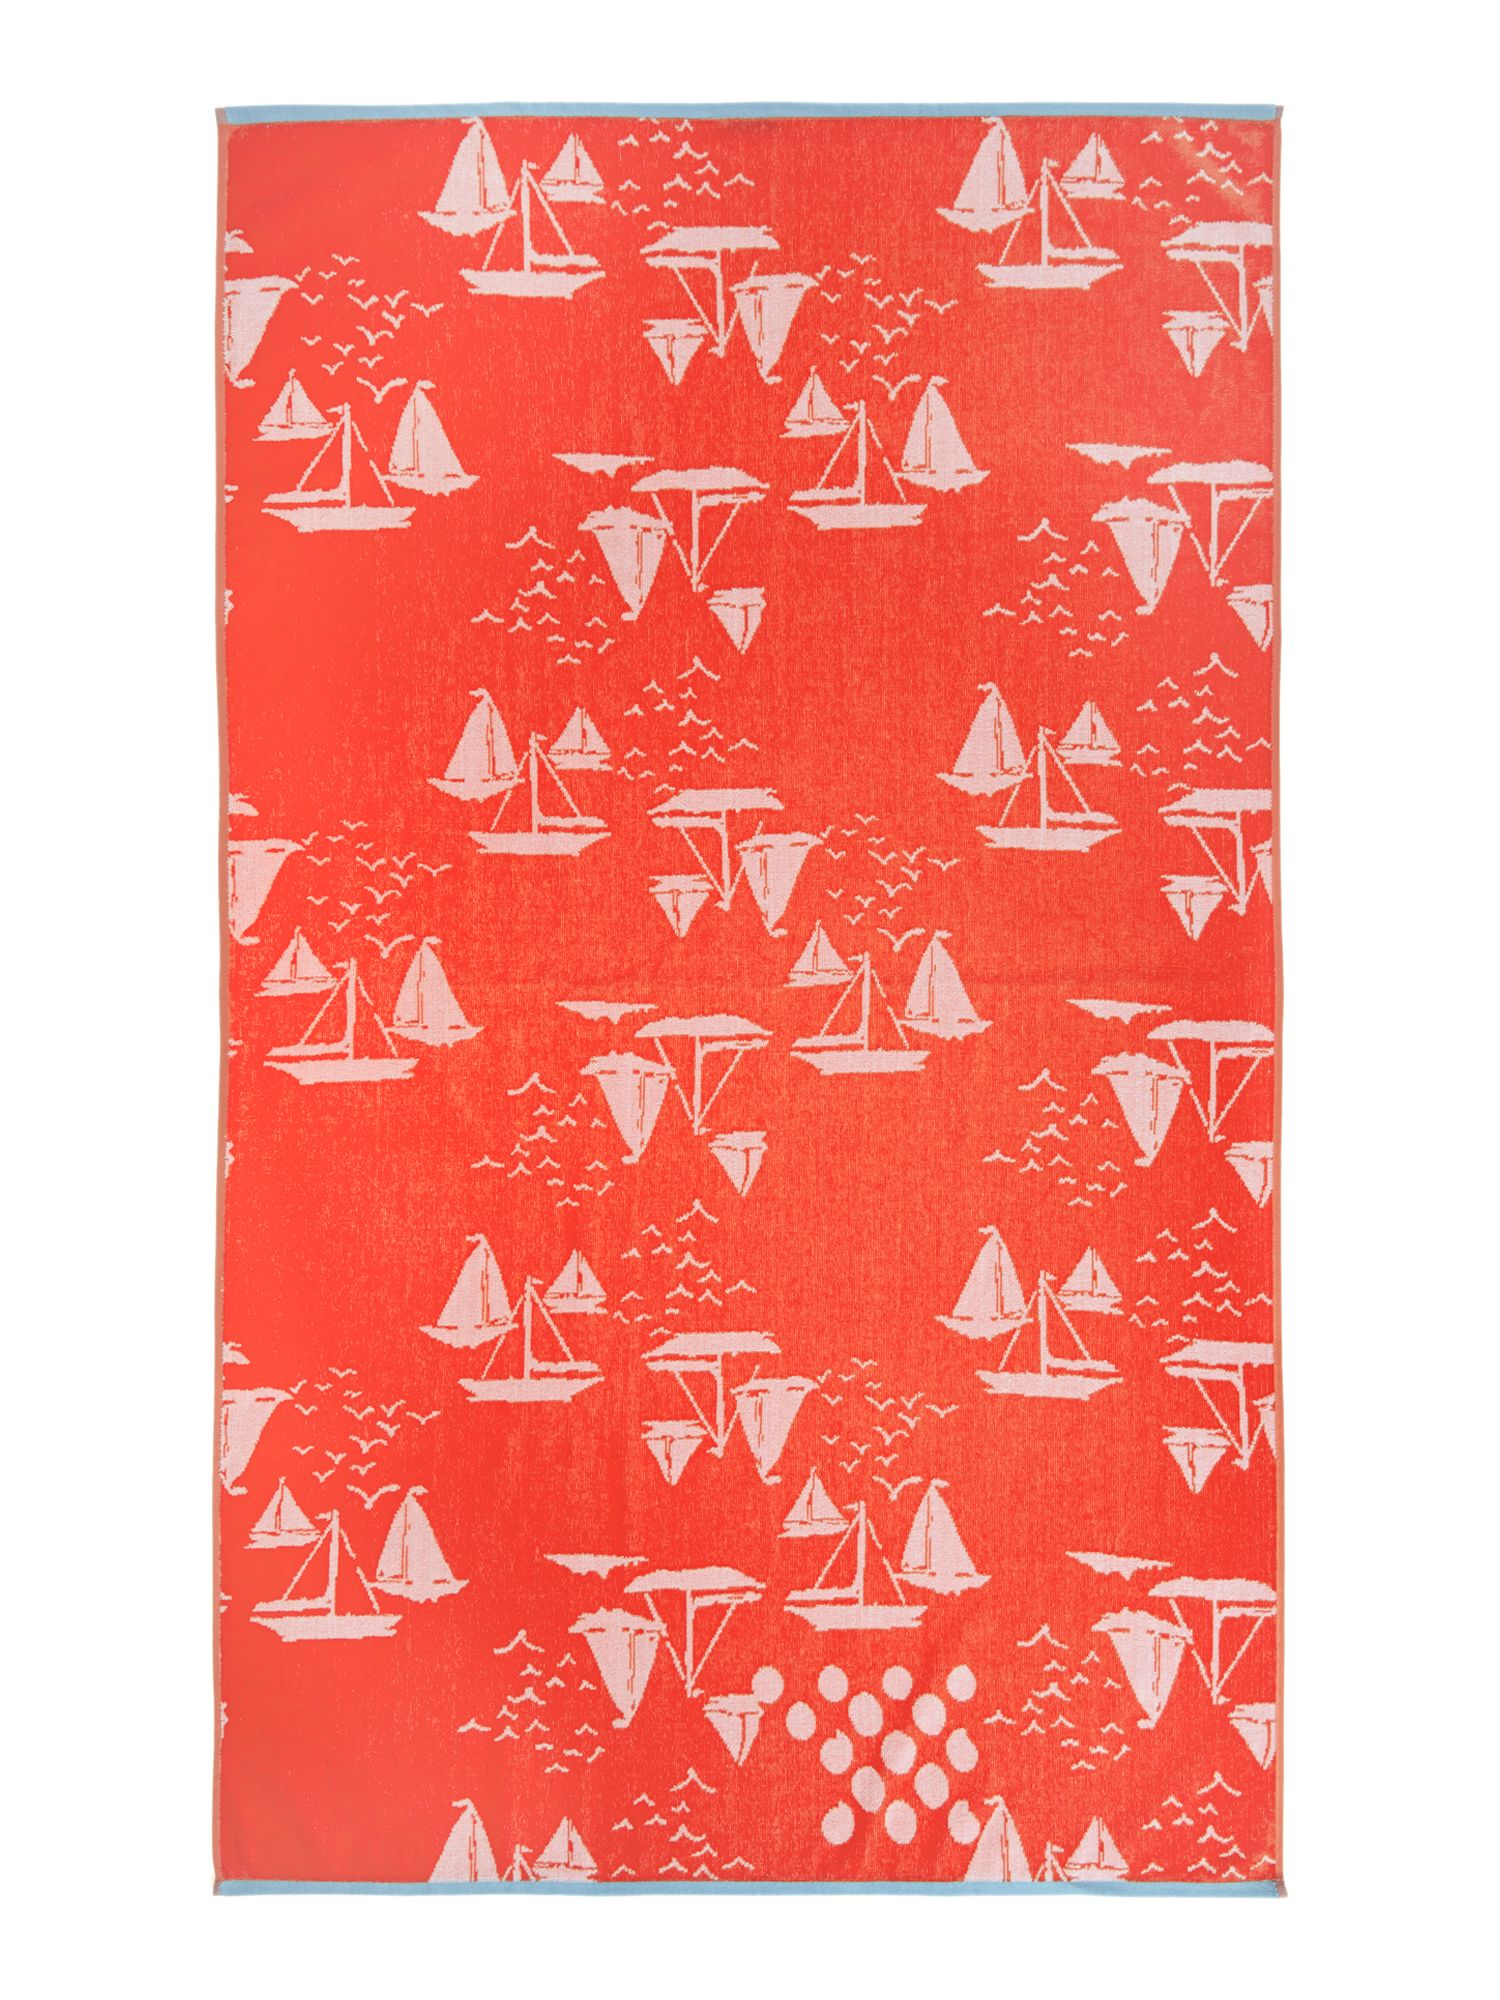 Yachting beach towel